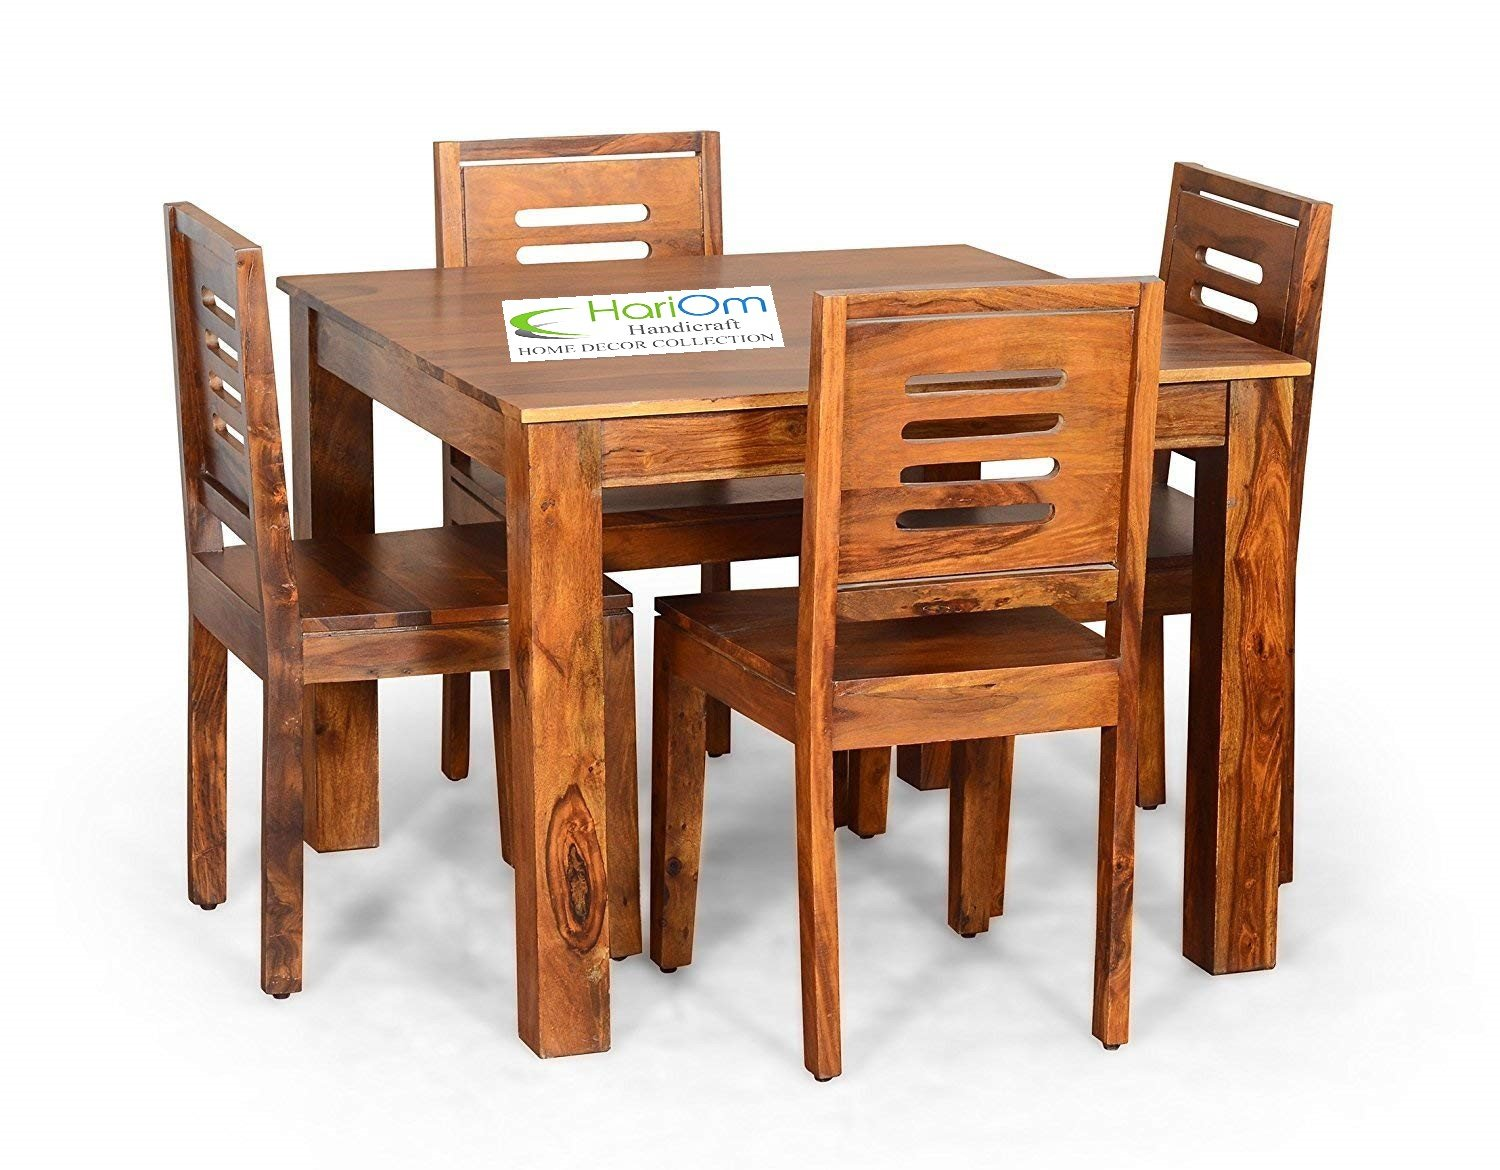 Hariom handicraft sheesham wood wooden dining set 4 seater dining table with chairs natural teak finish amazon in home kitchen